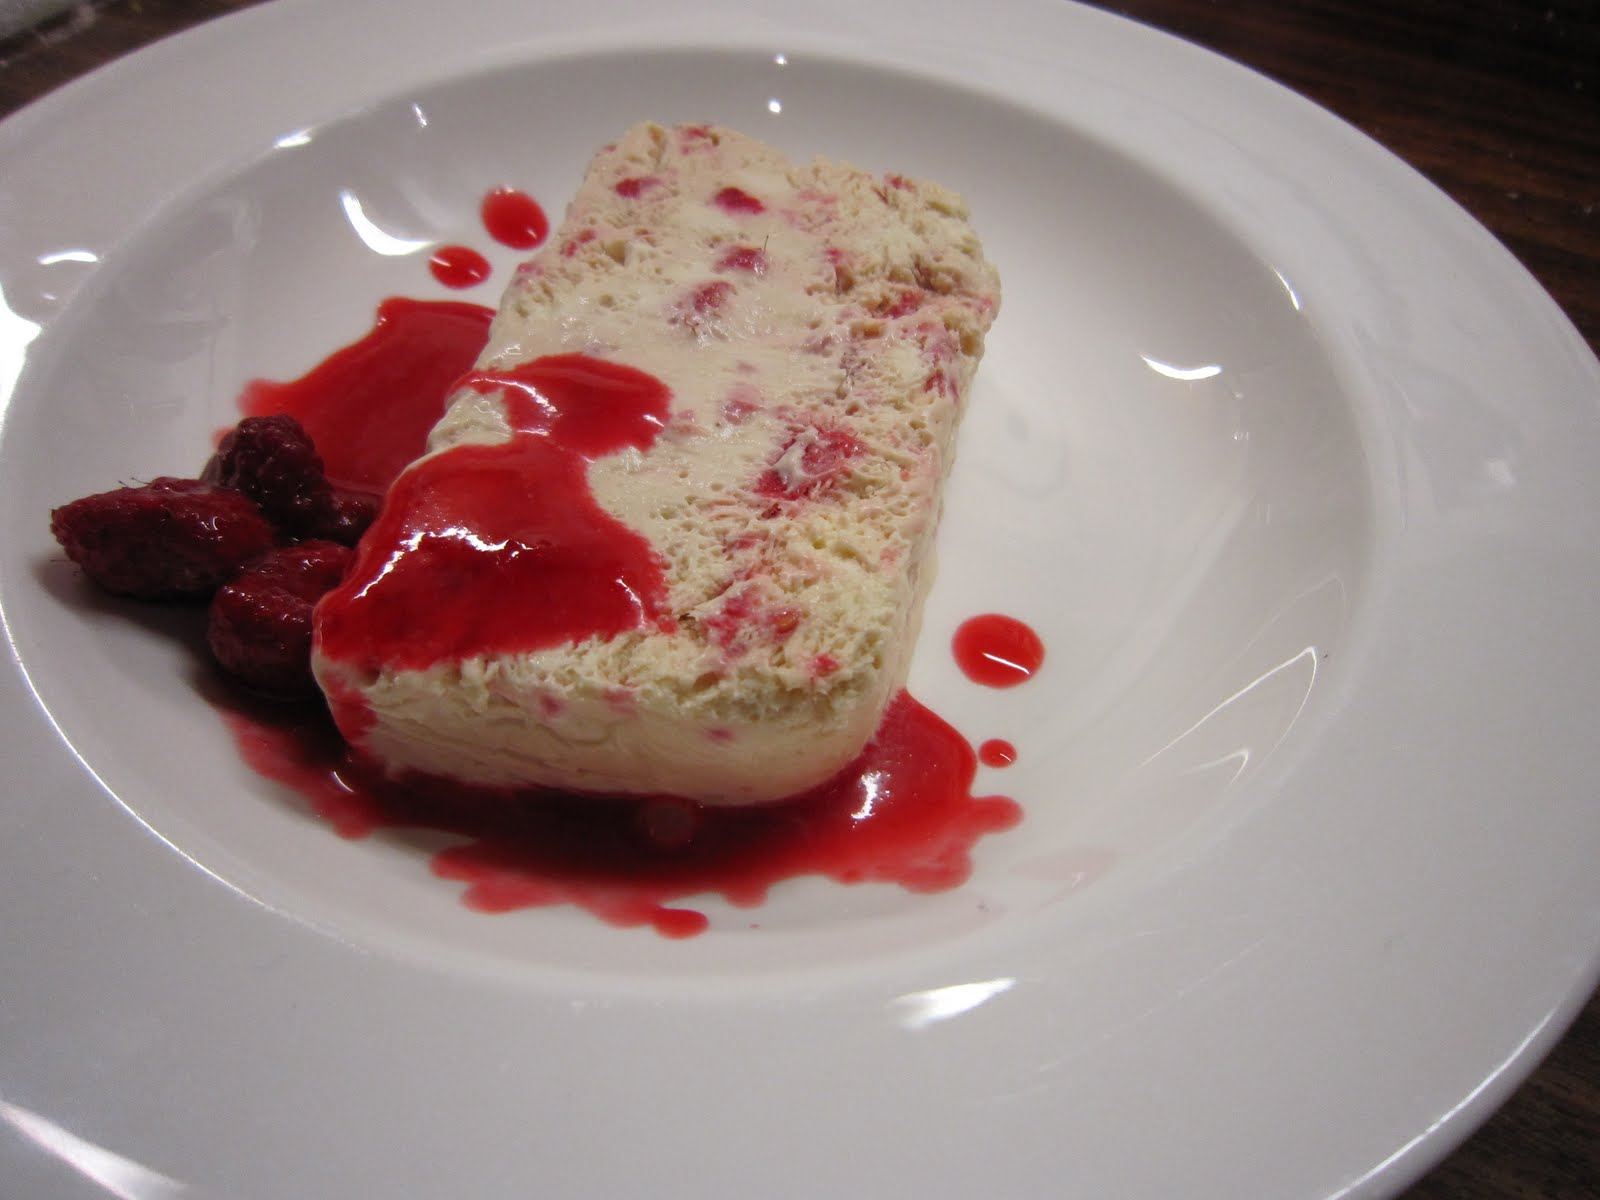 ... of strawberries and cream this semifreddo will reawaken your love for